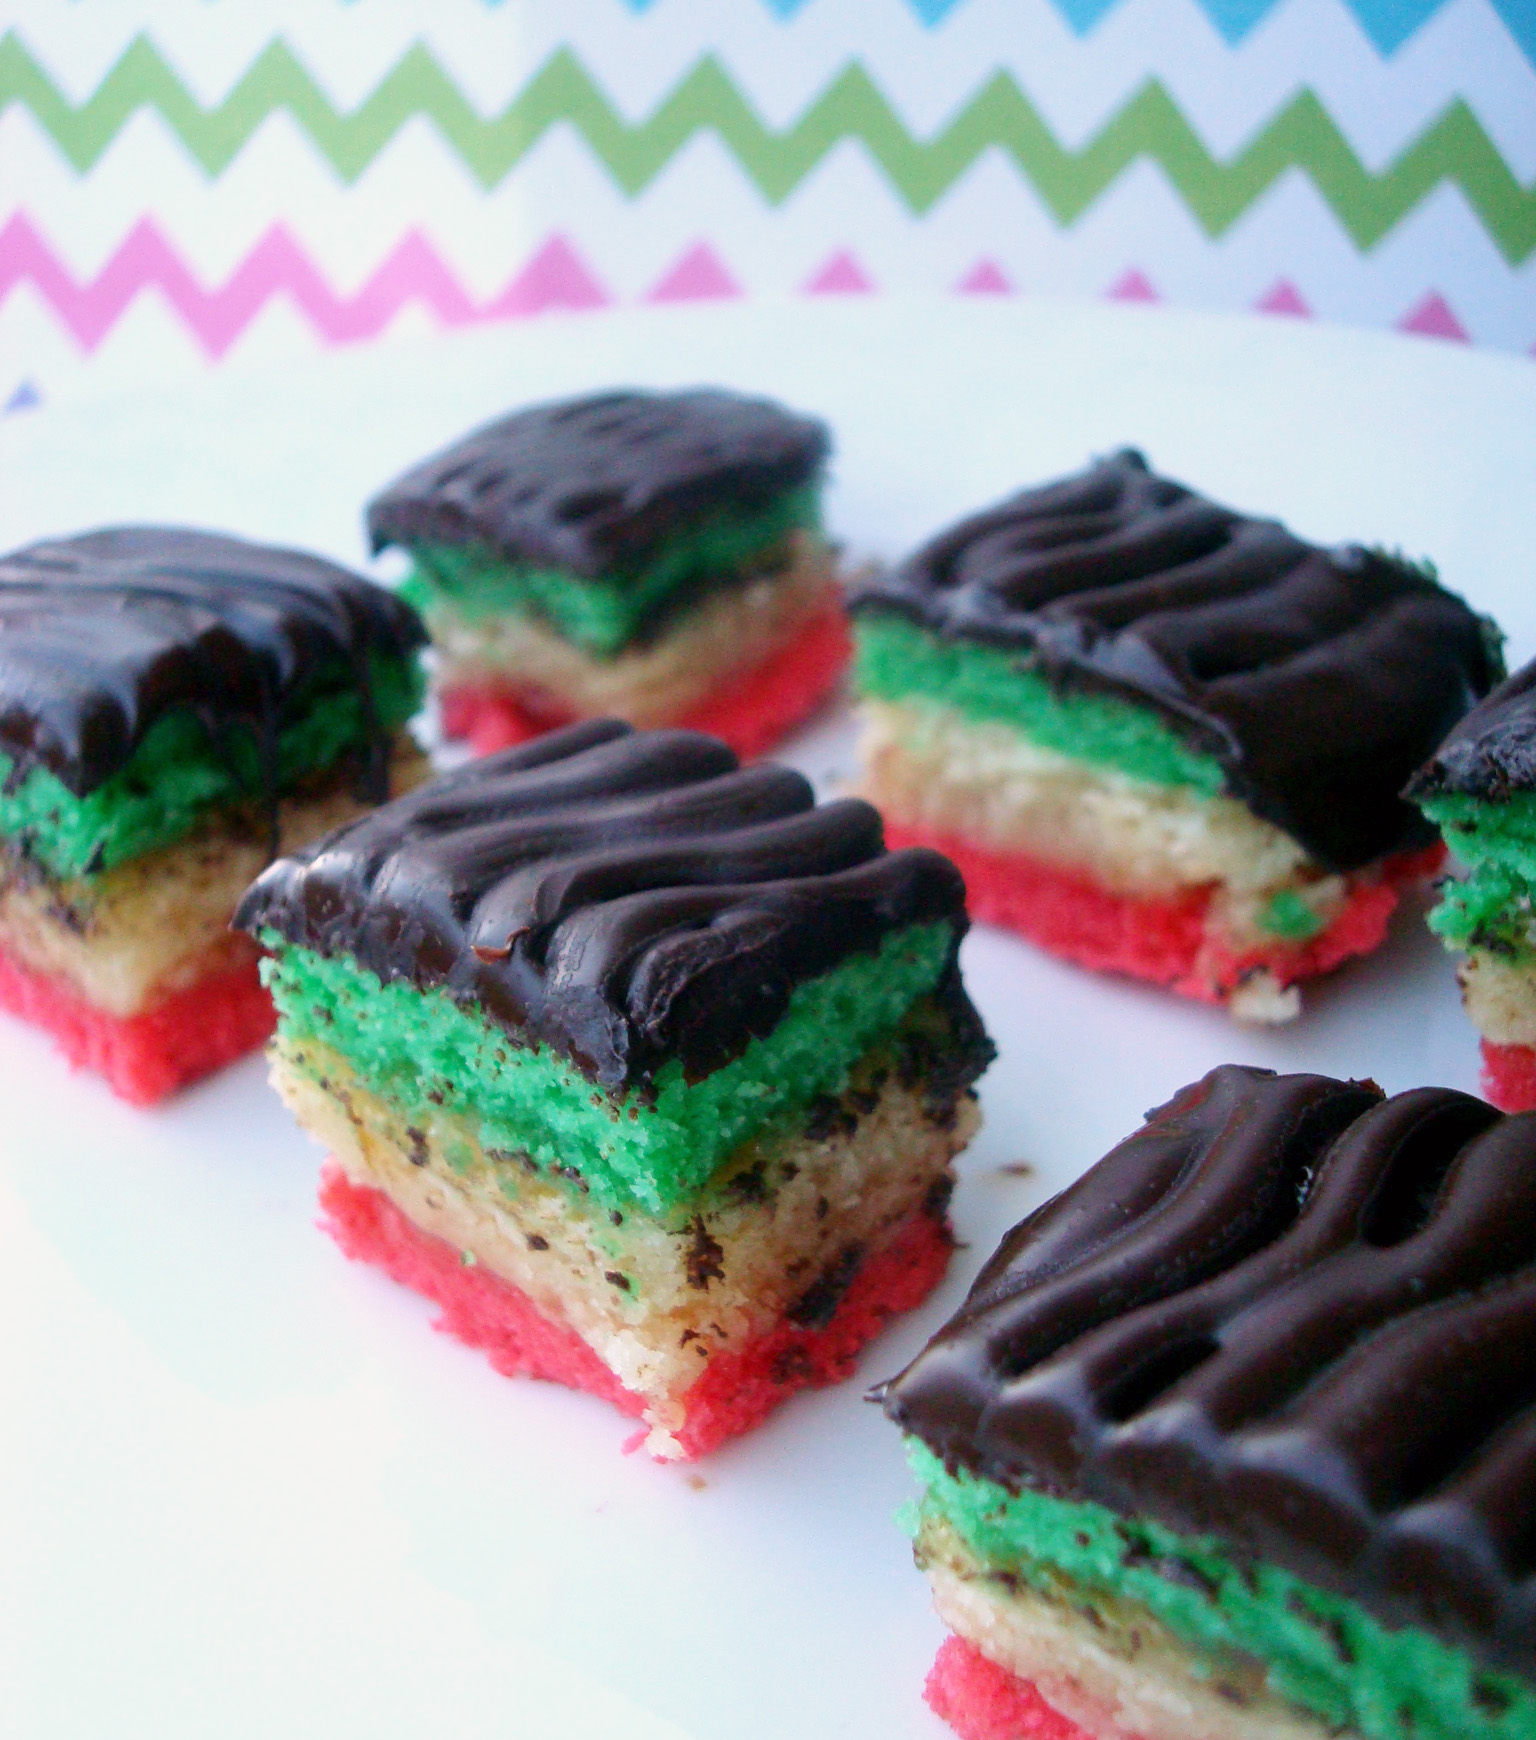 Delicious rainbow cookies on a plate